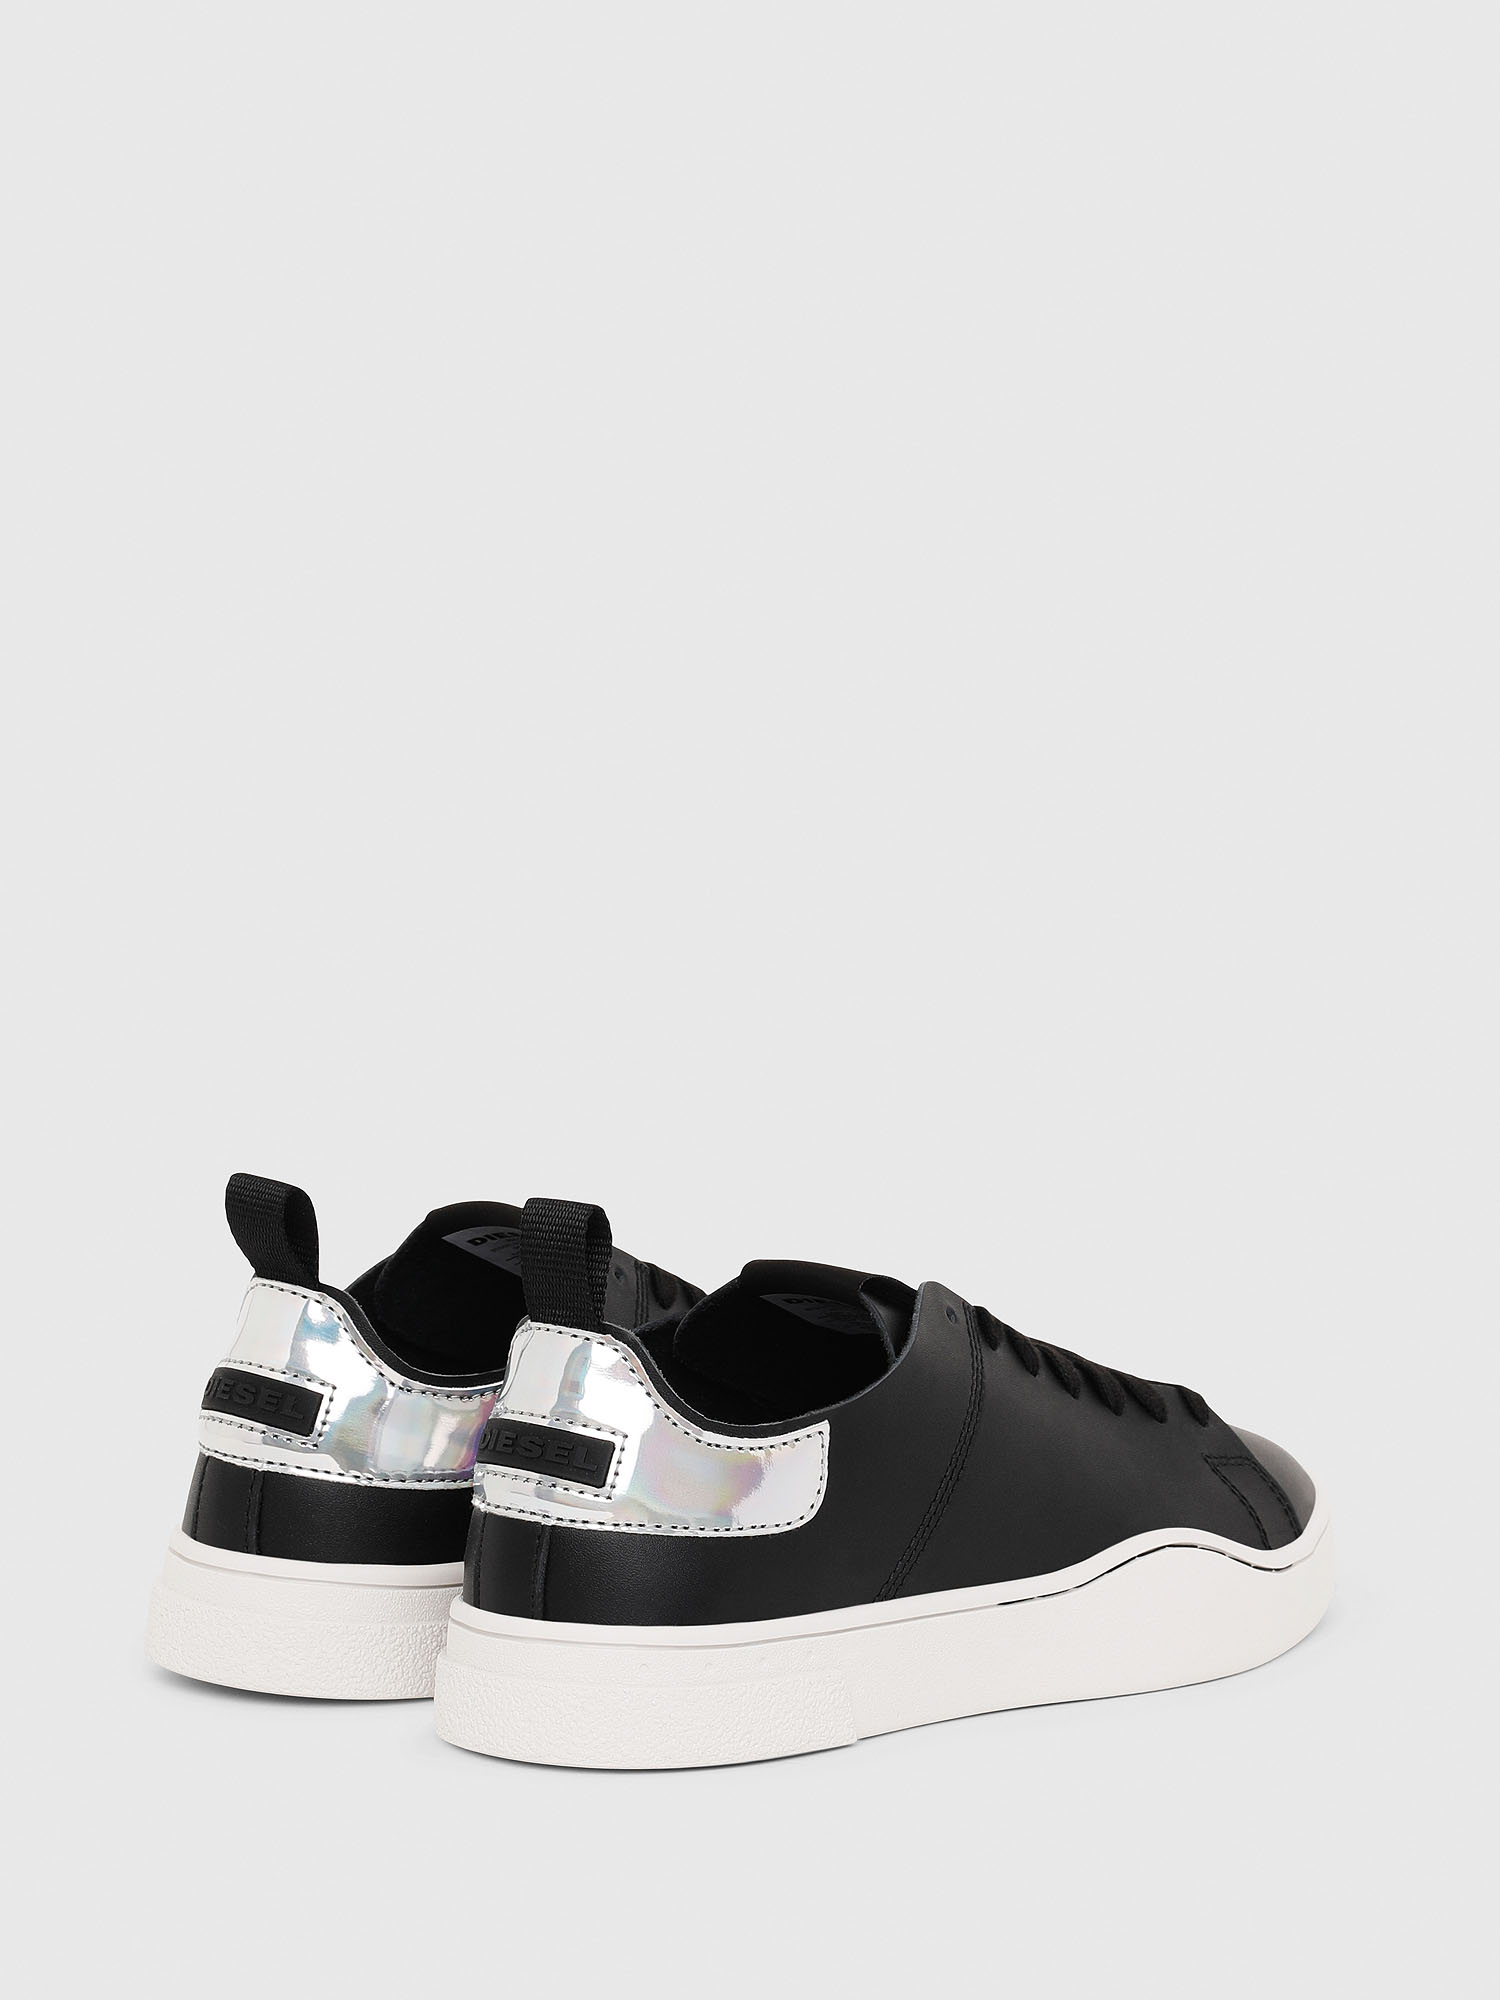 Diesel - S-CLEVER LS W,  - Baskets - Image 3